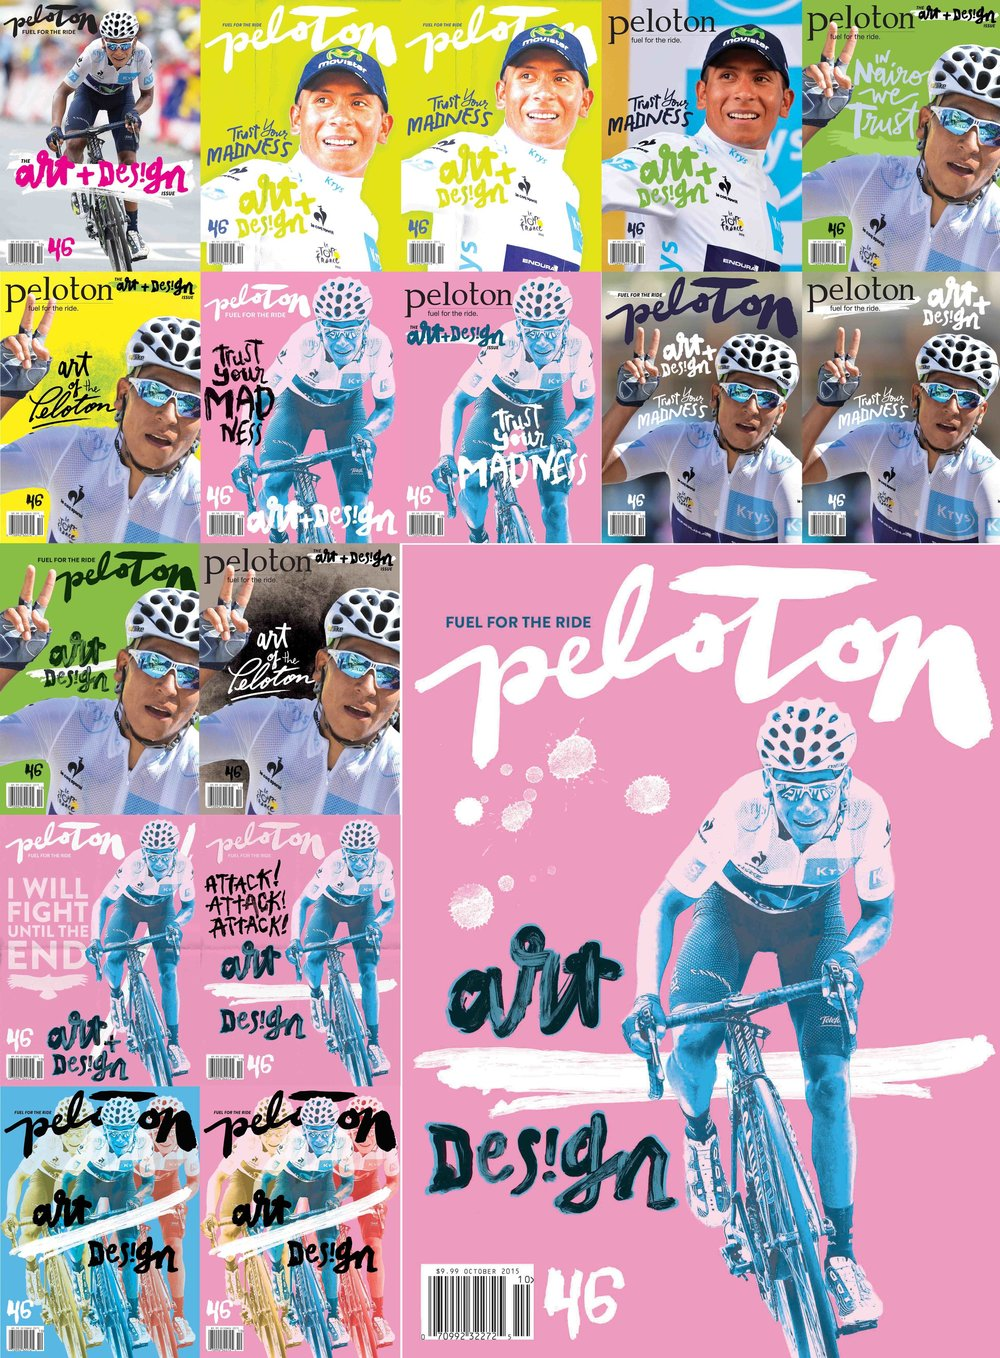 Peloton Magazine #46 - Process Design